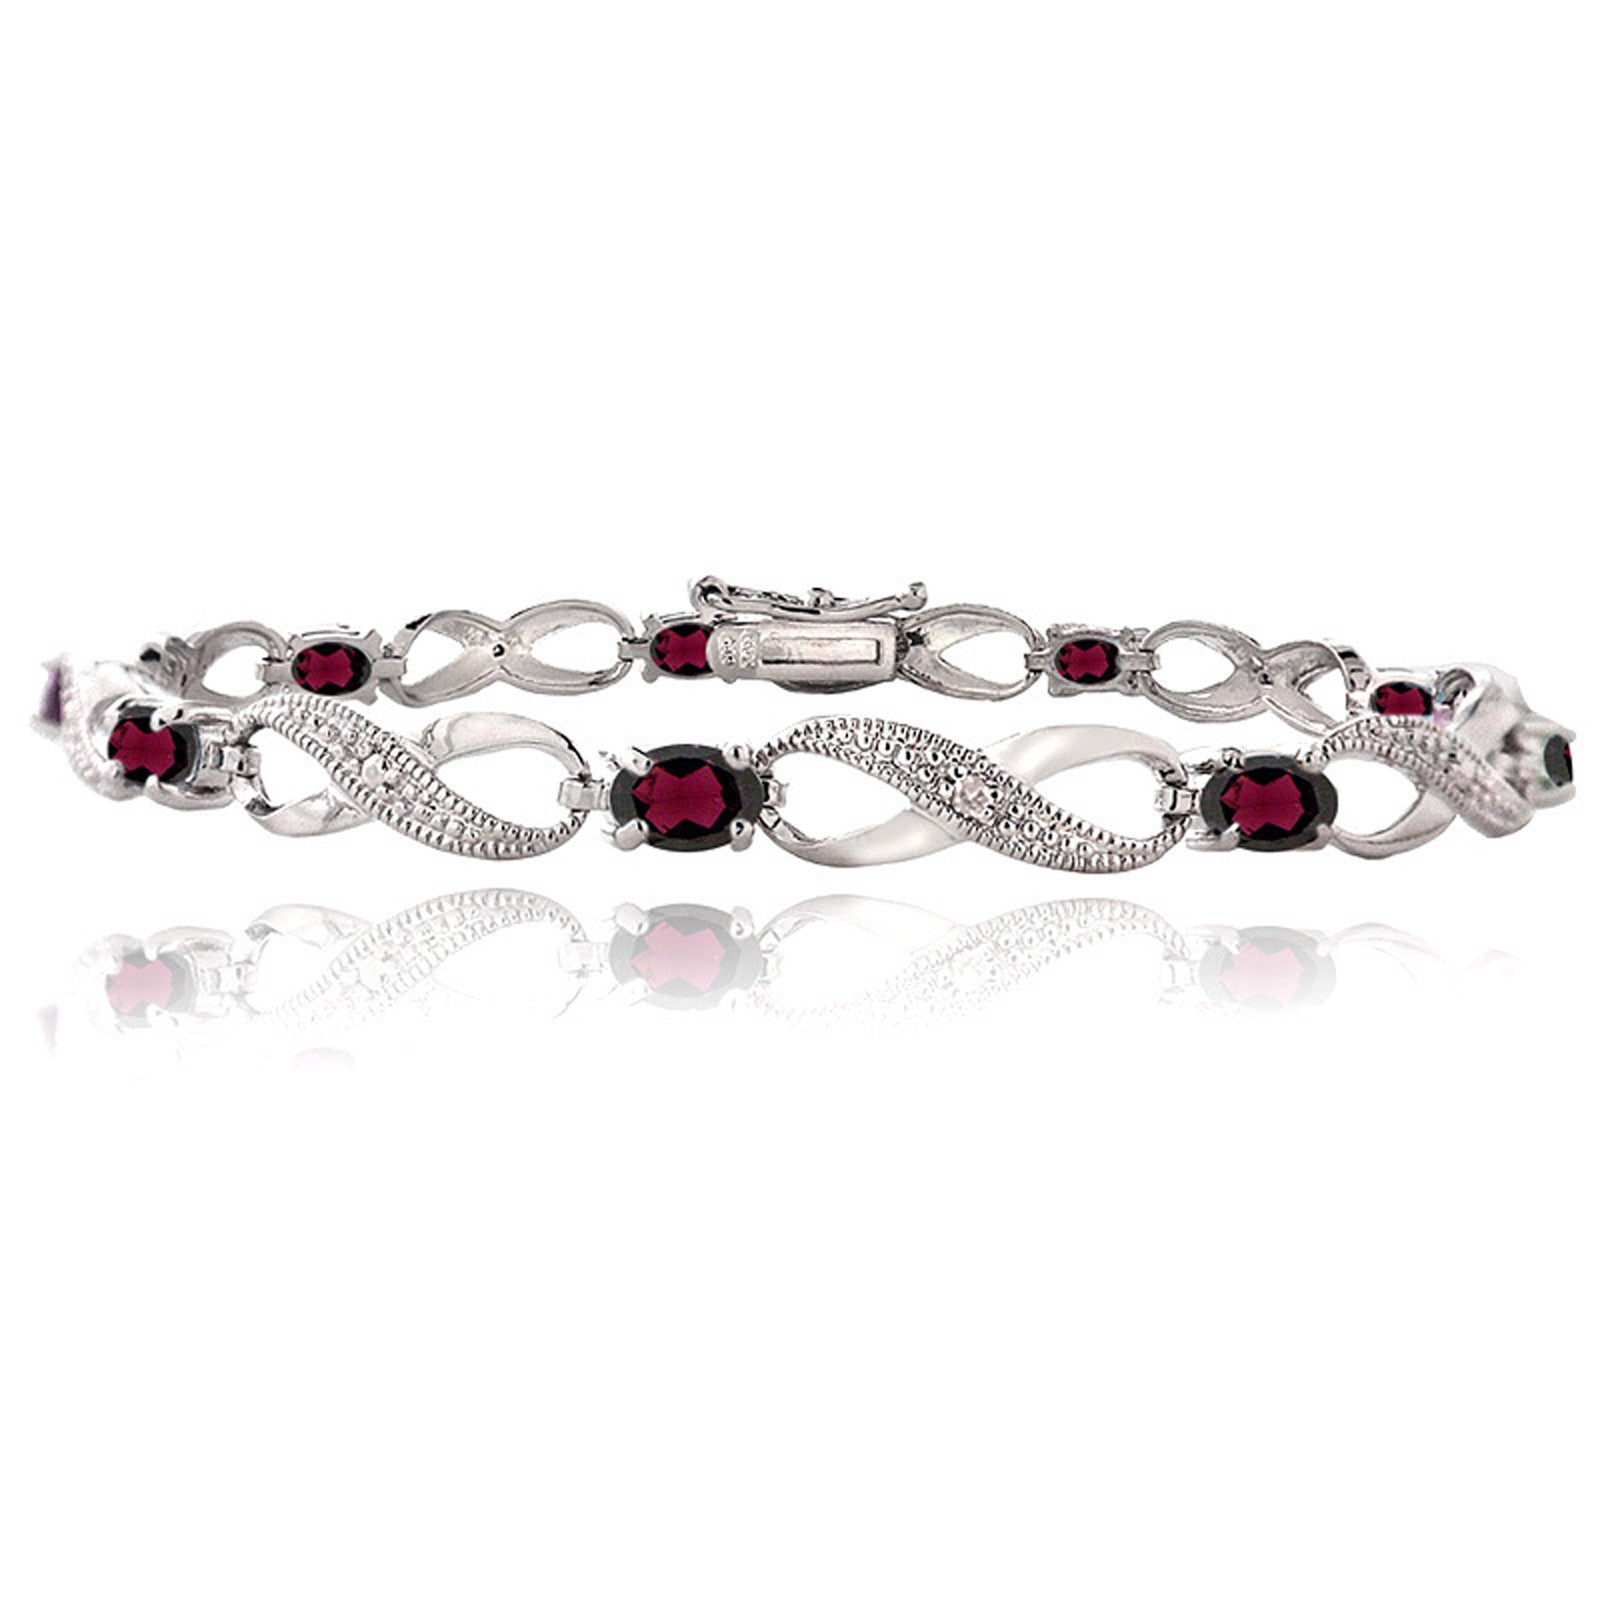 Infinity Bracelet With Diamond & Gem Accents in a Linked Style - Garnet